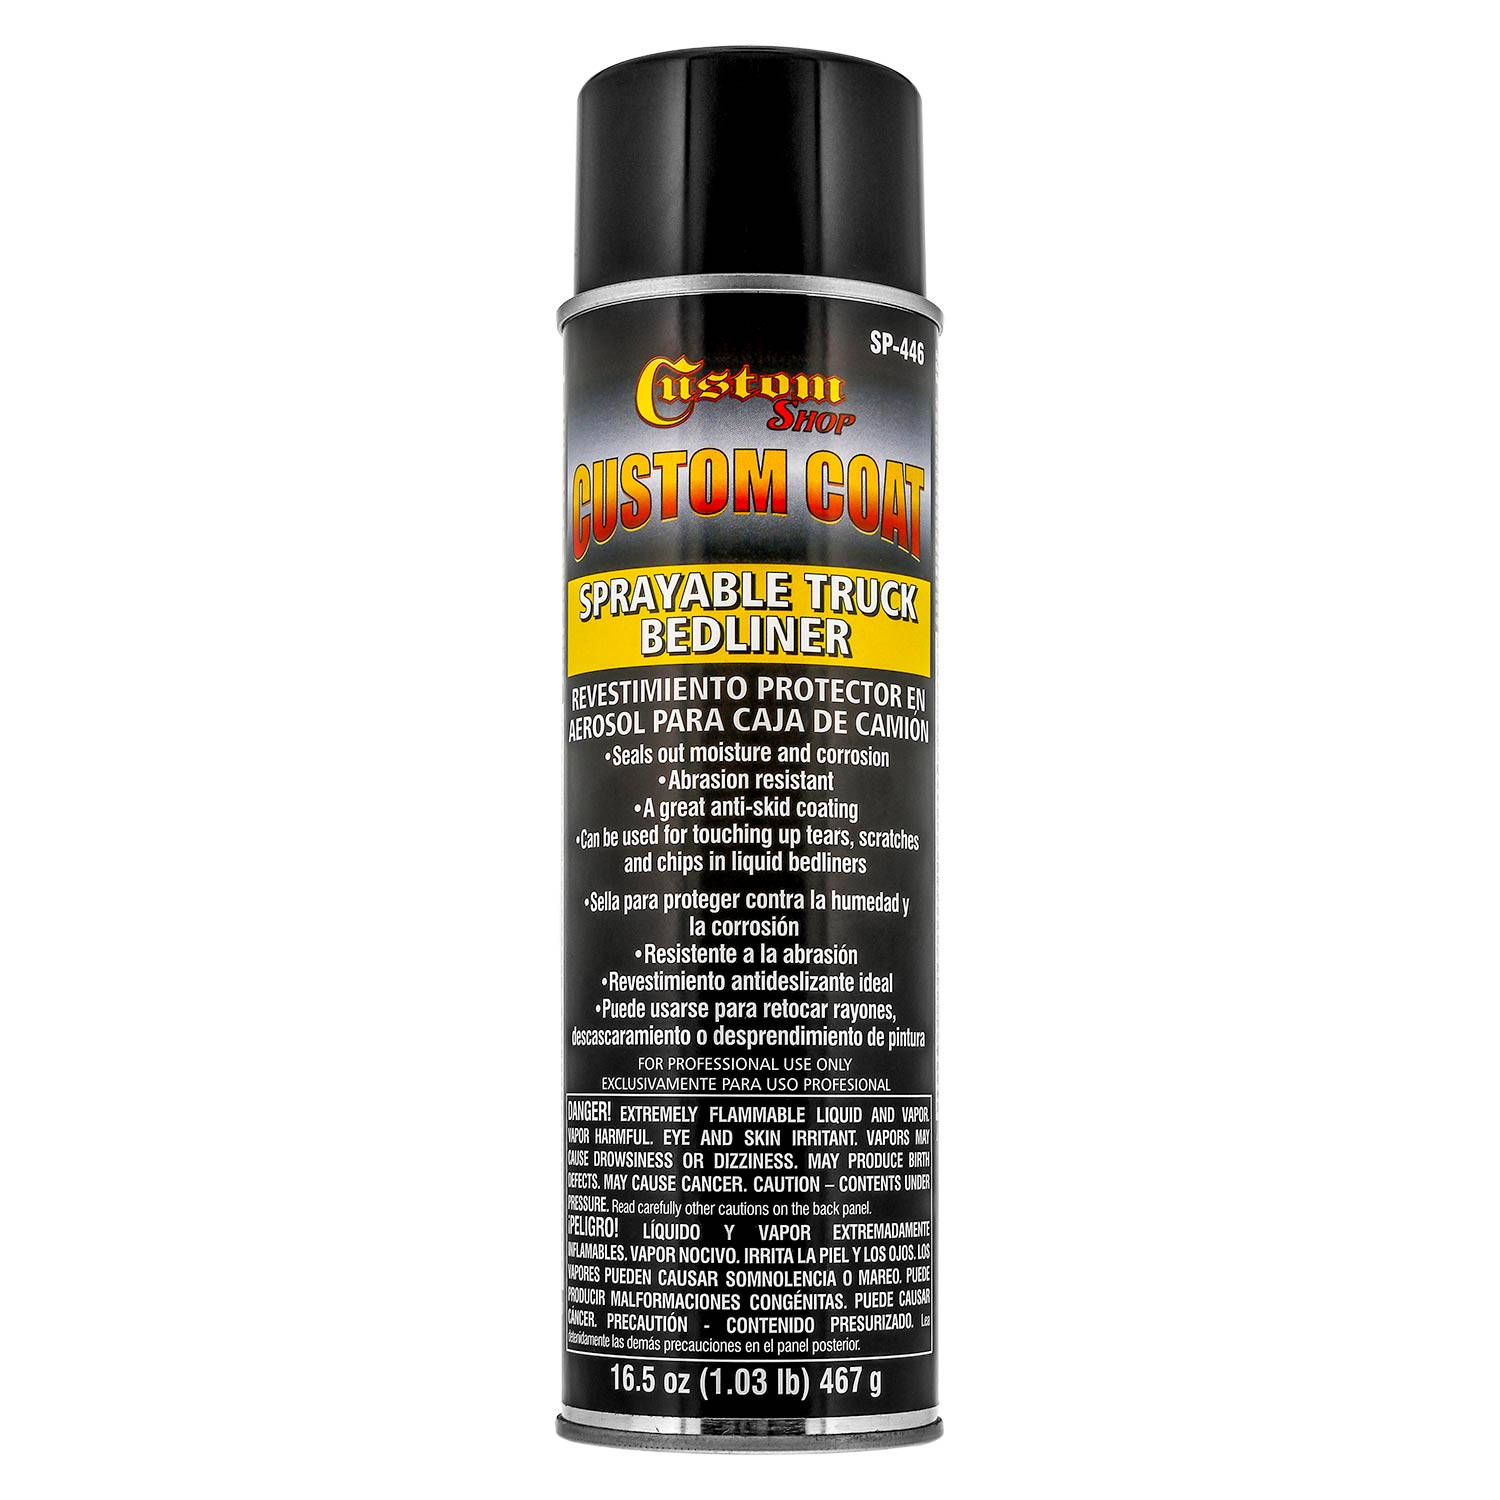 Custom Coat Sprayable Truck Bedliner 16.5 ounce Spray Can - Black